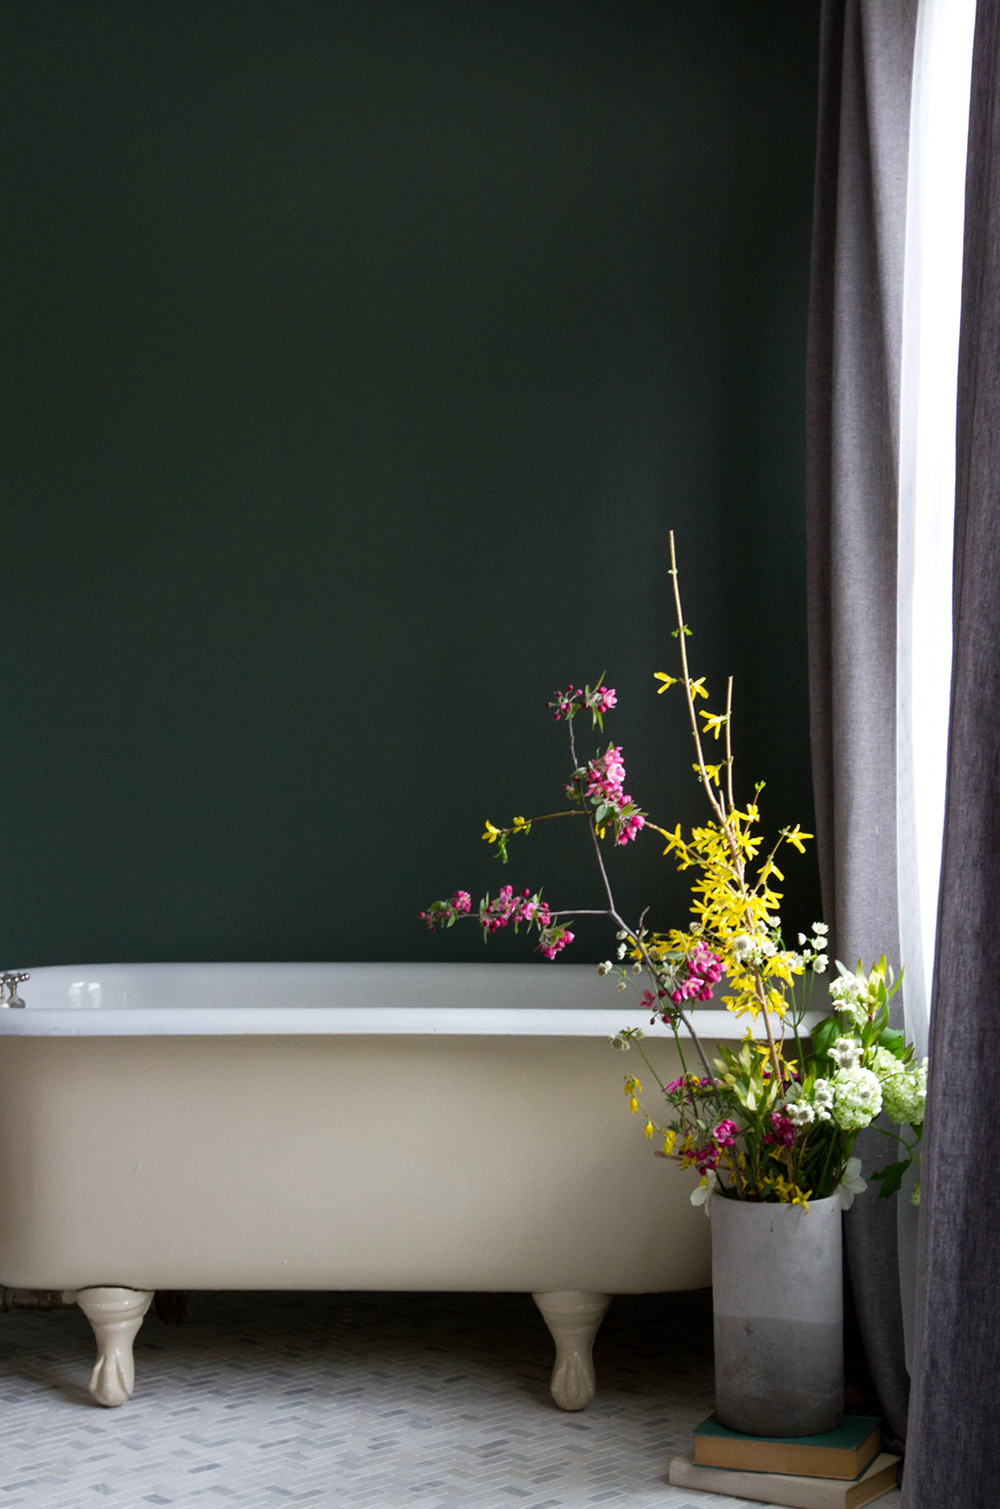 The Rooms - There are 14 guest rooms on property on three floors, some with clawfoot bathtubs and all with private new tile & marble bathrooms with showers. Some rooms offer expansive views of the Willowemoc Valley and River and glimpses of the mountains providing trails for guests. Guestrooms feature straightforward, clean design details that aim to bring a sense of calm. Down duvets, Sferra linens, and Malin & Goetz toiletries are provided throughout your stay.